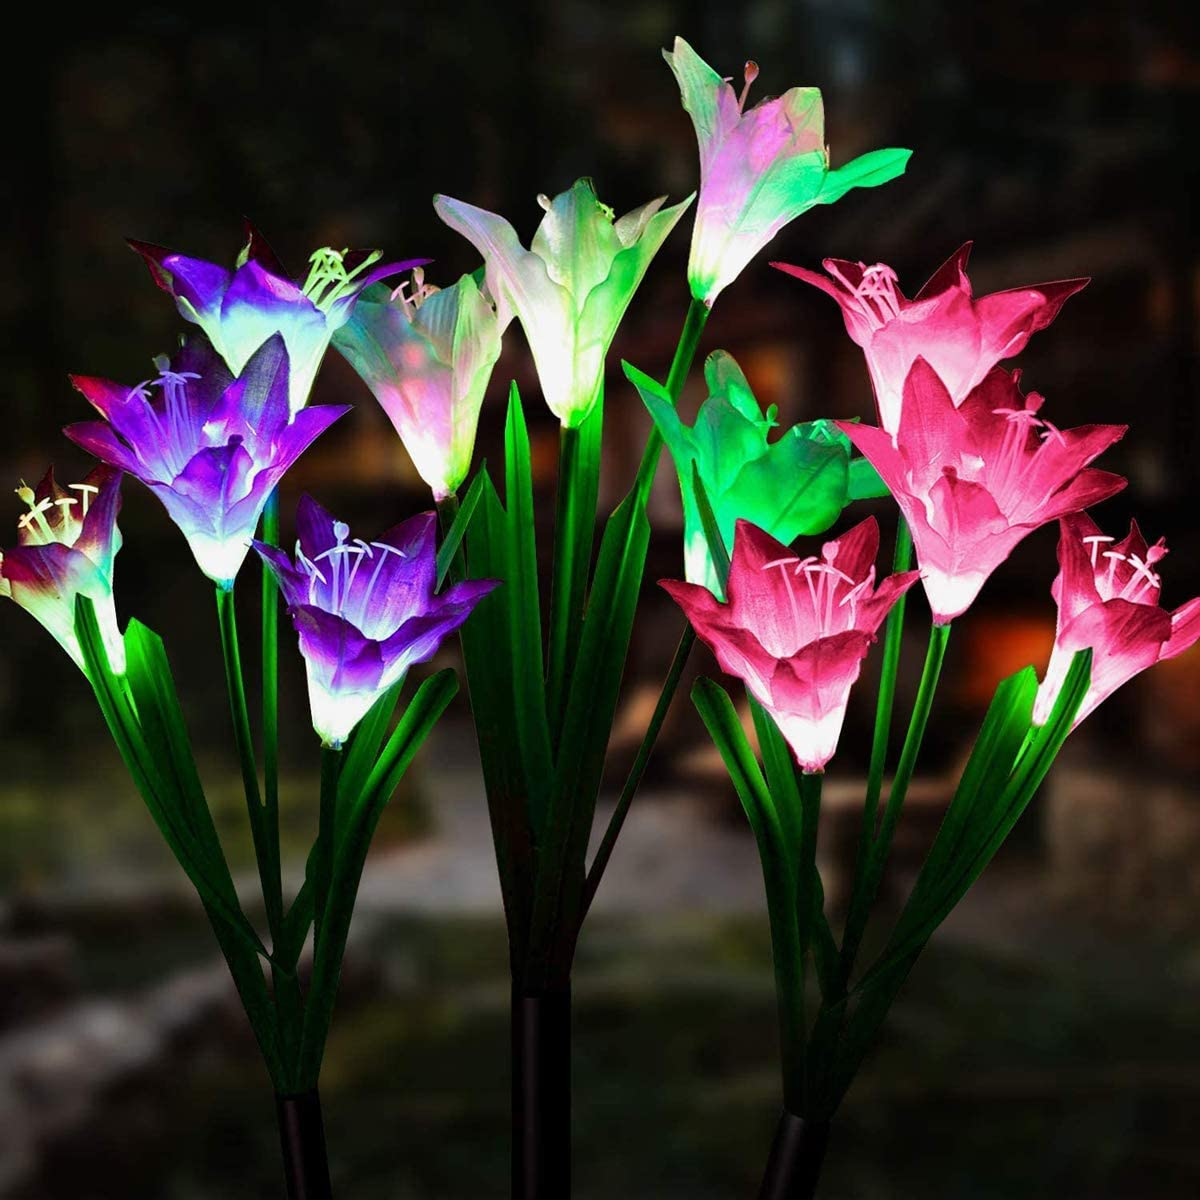 SOLARBABY Outdoor Solar Lights 3 Pack Solar Flower with 12 Bigger Lily Flowers,Multi-Color Changing LED Solar Lights Outdoor for Garden Lawn Yard Pathway